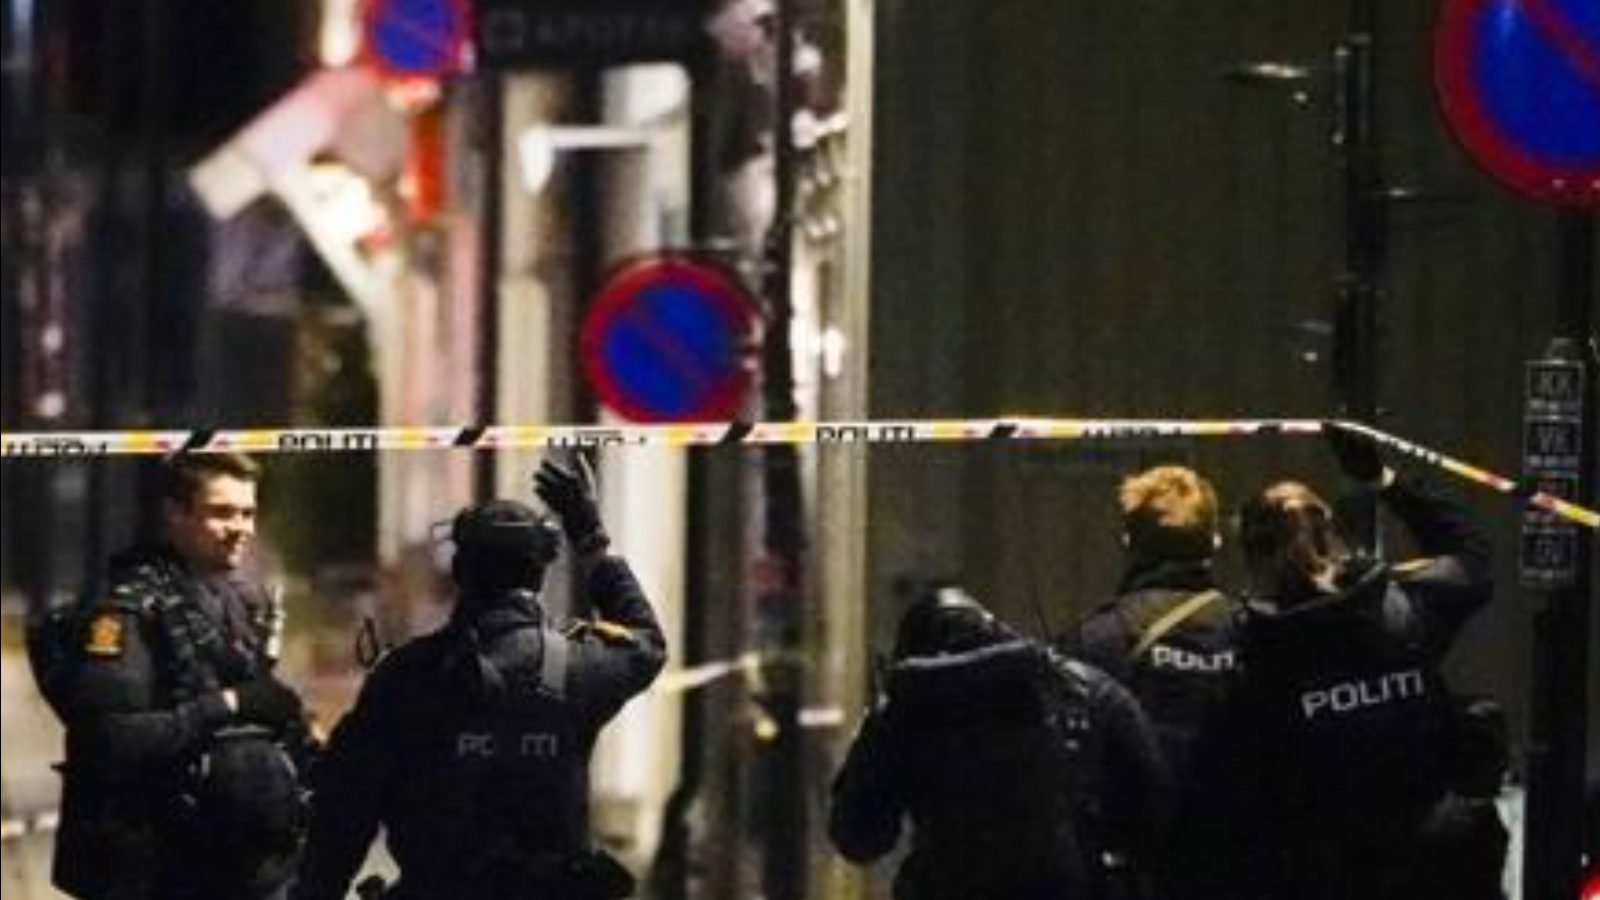 Man With Bow and Arrows Kills Five in Norway